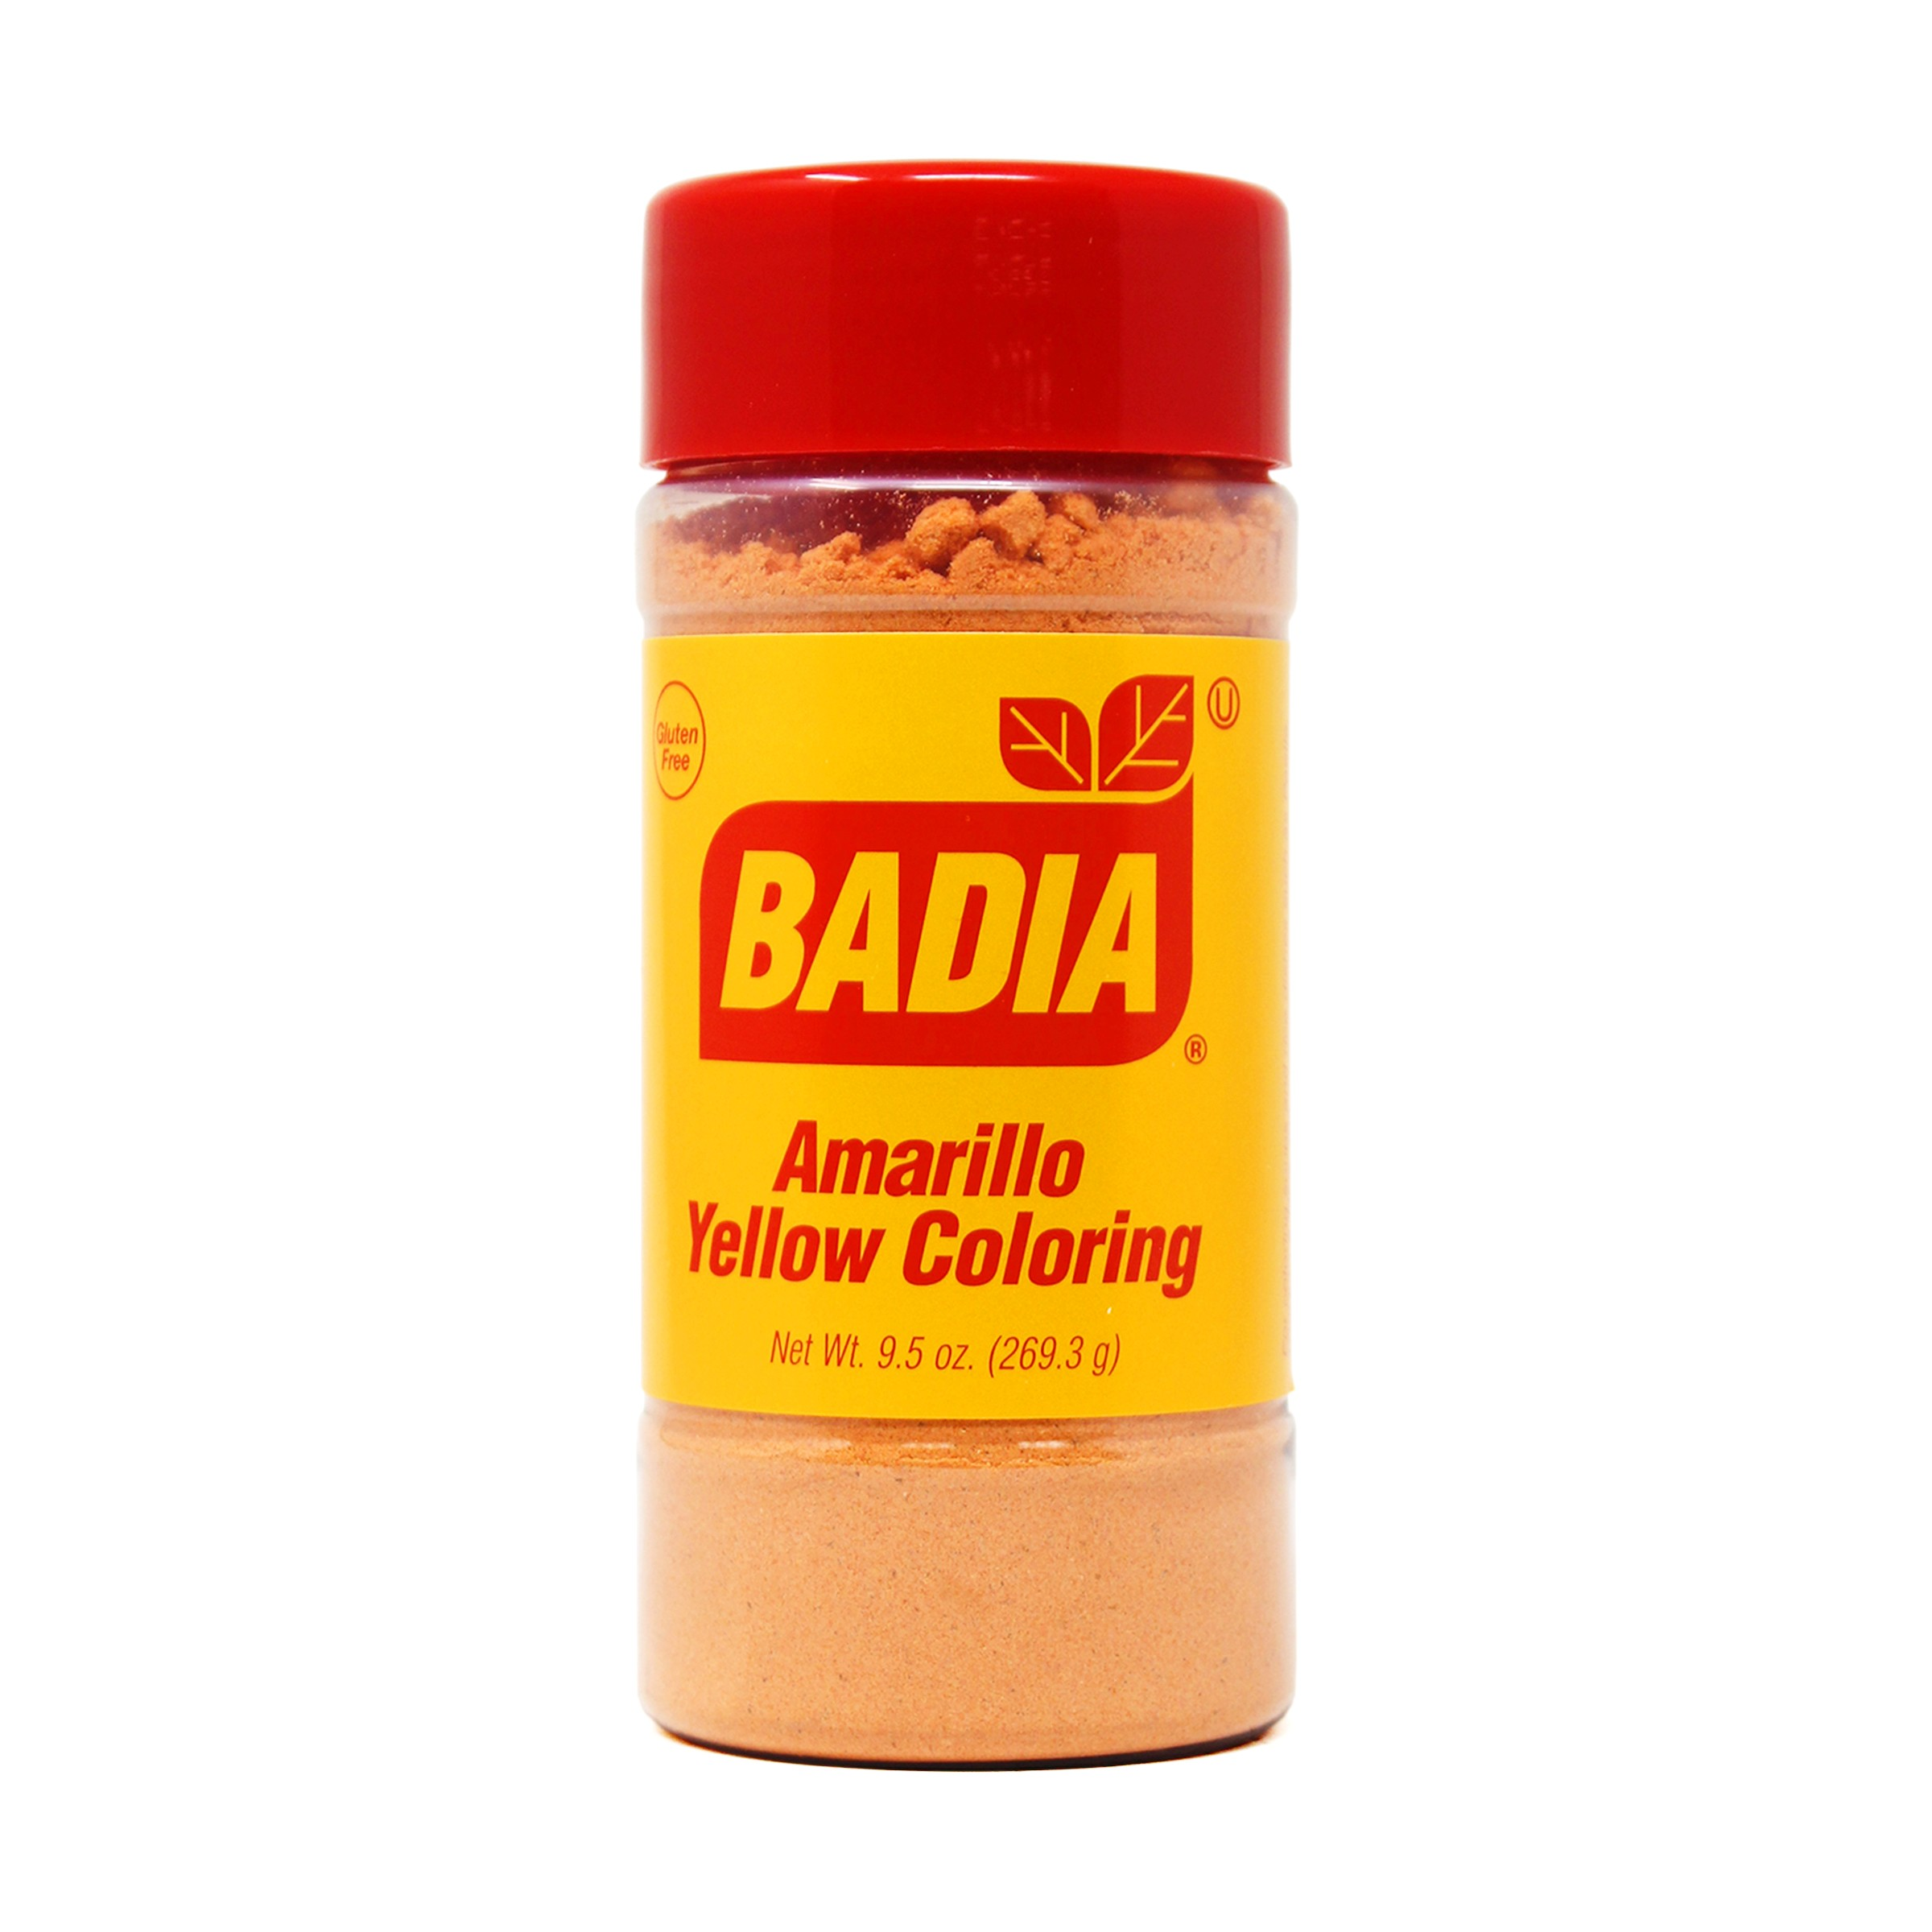 Yellow Coloring/Amarillo (economy) - 9.5 oz - Badia Spices